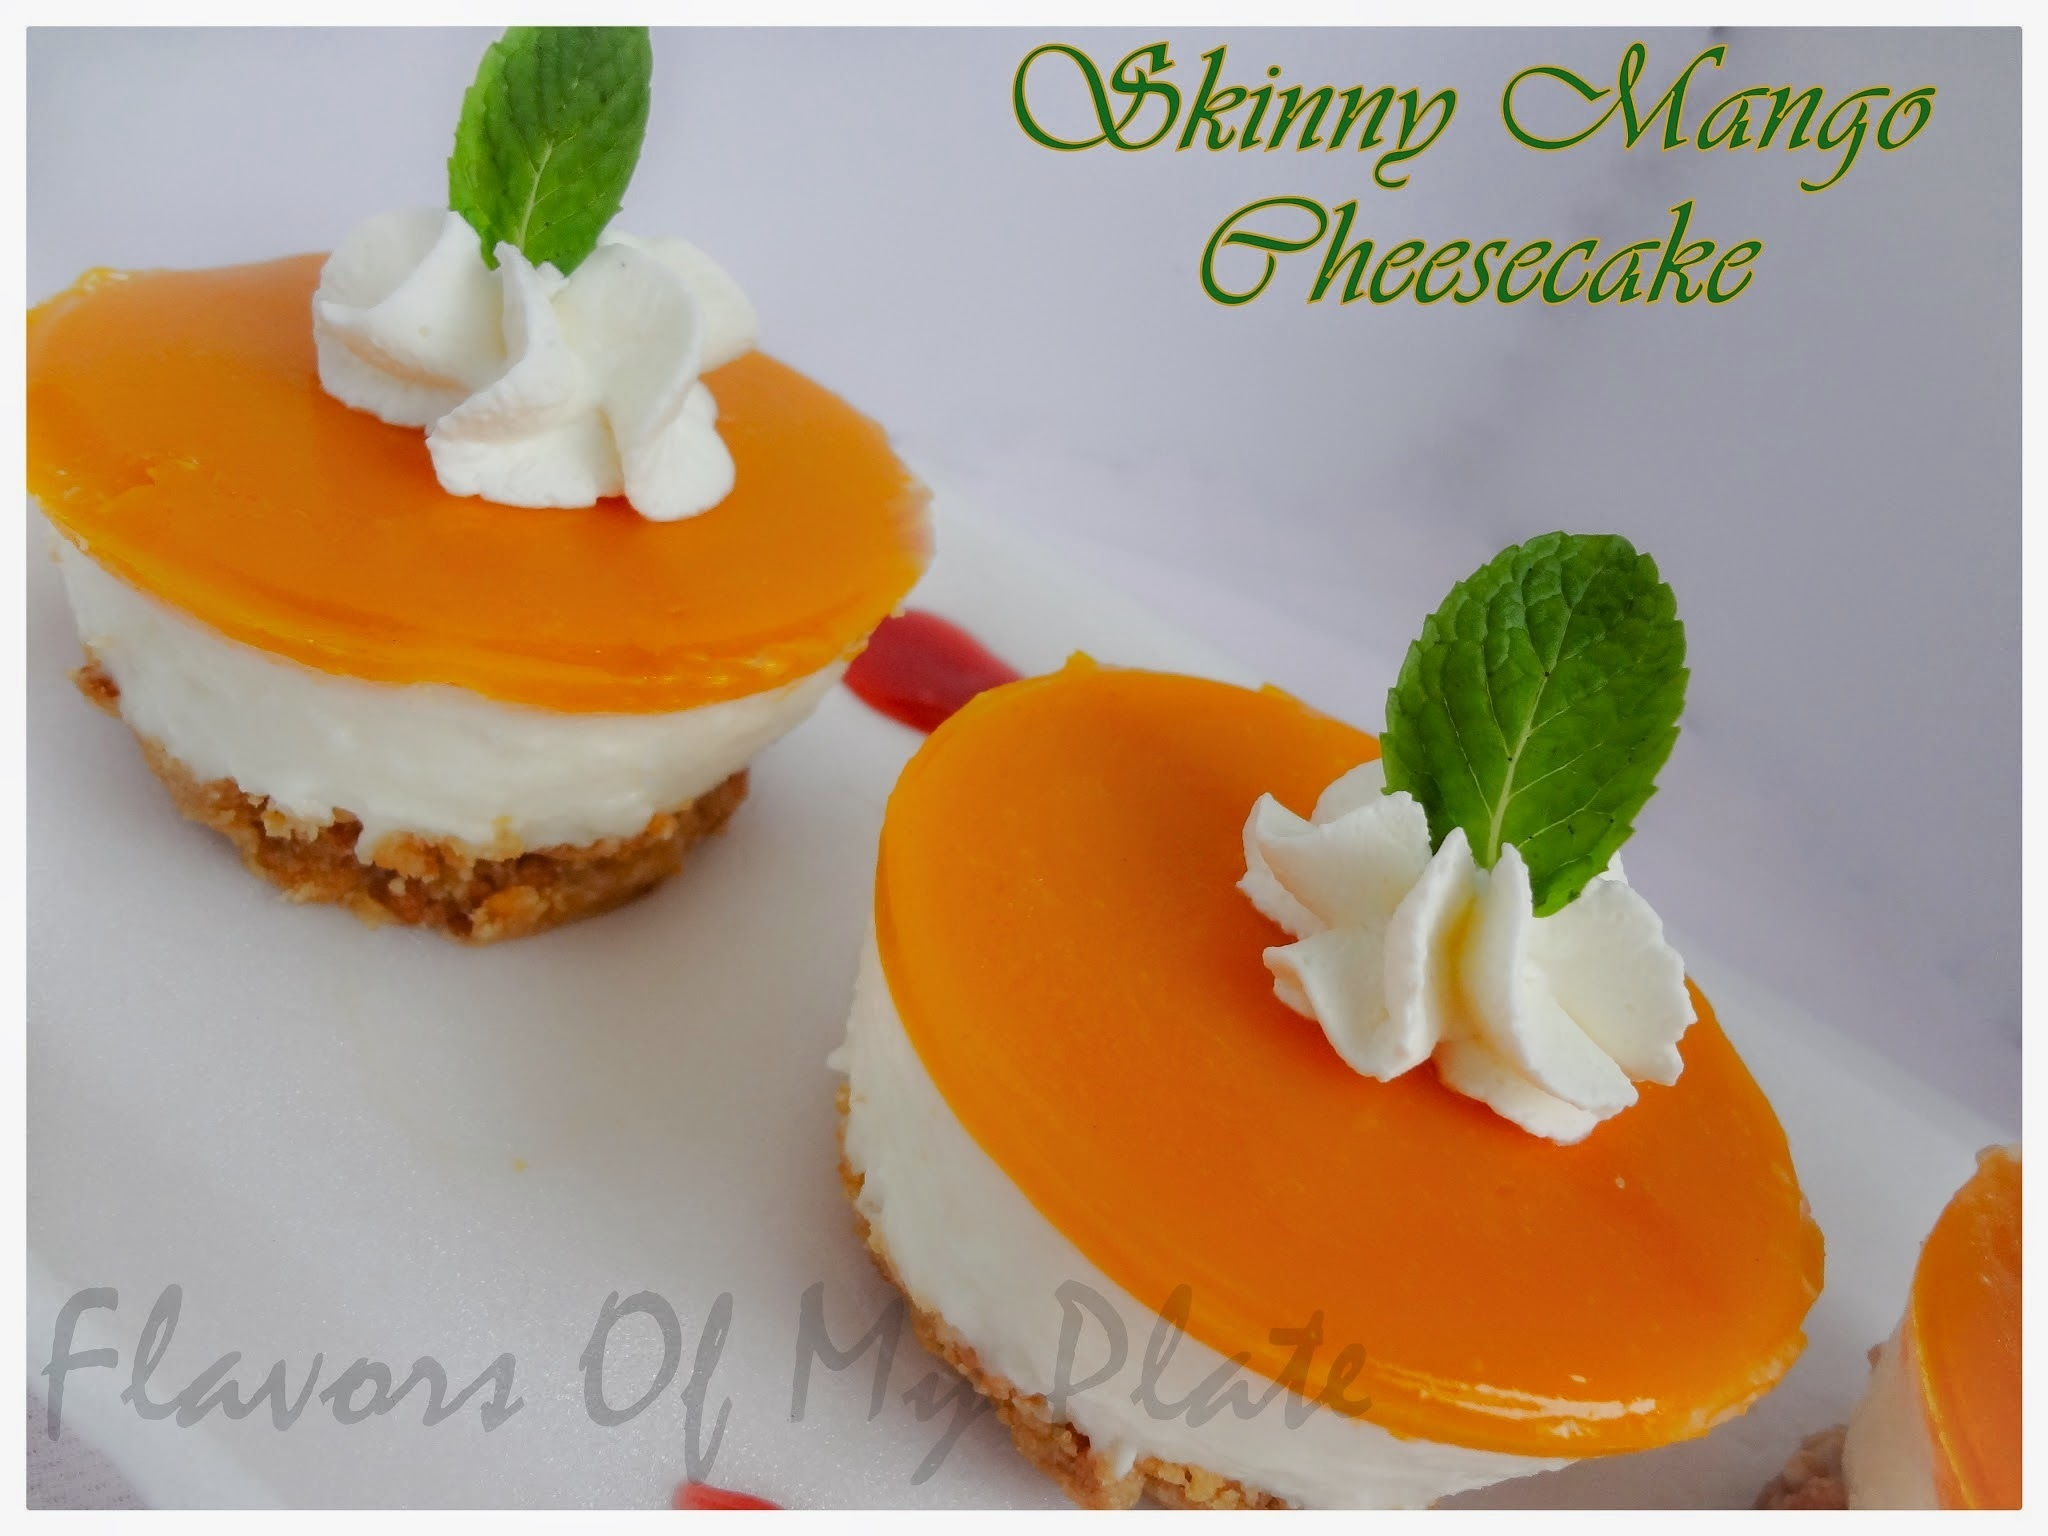 Skinny Mango Cheesecake.........A Cheesecake Without Cheese